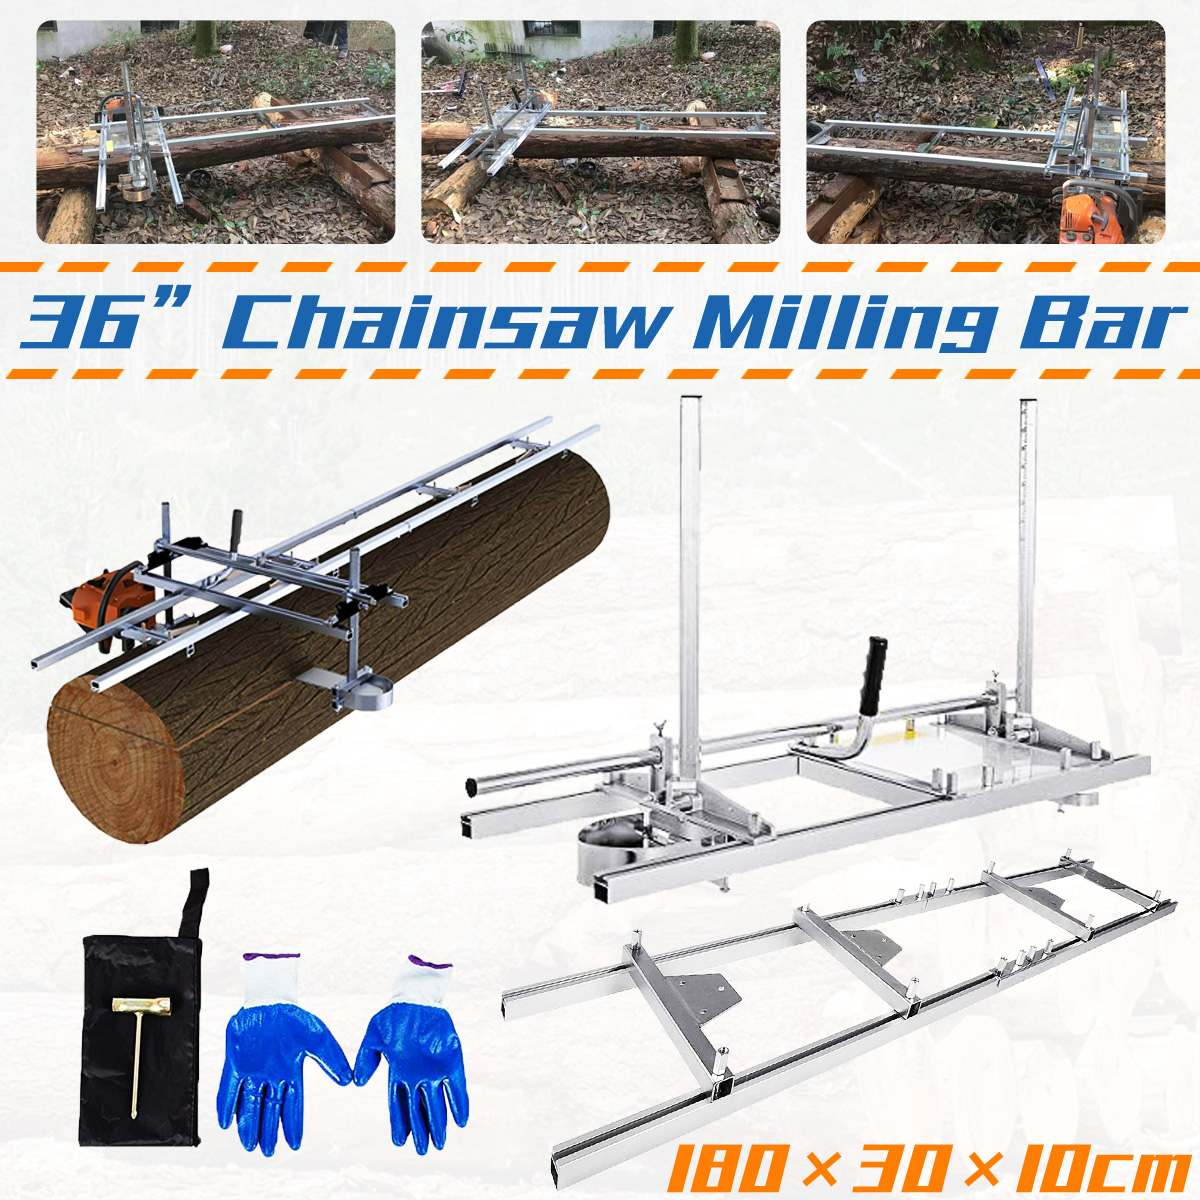 36 Planking Milling Bar Milling Rail System Portable Adjustable Chain Saw Chainsaw Mill With 1.8m Guide Set Cutting Tool